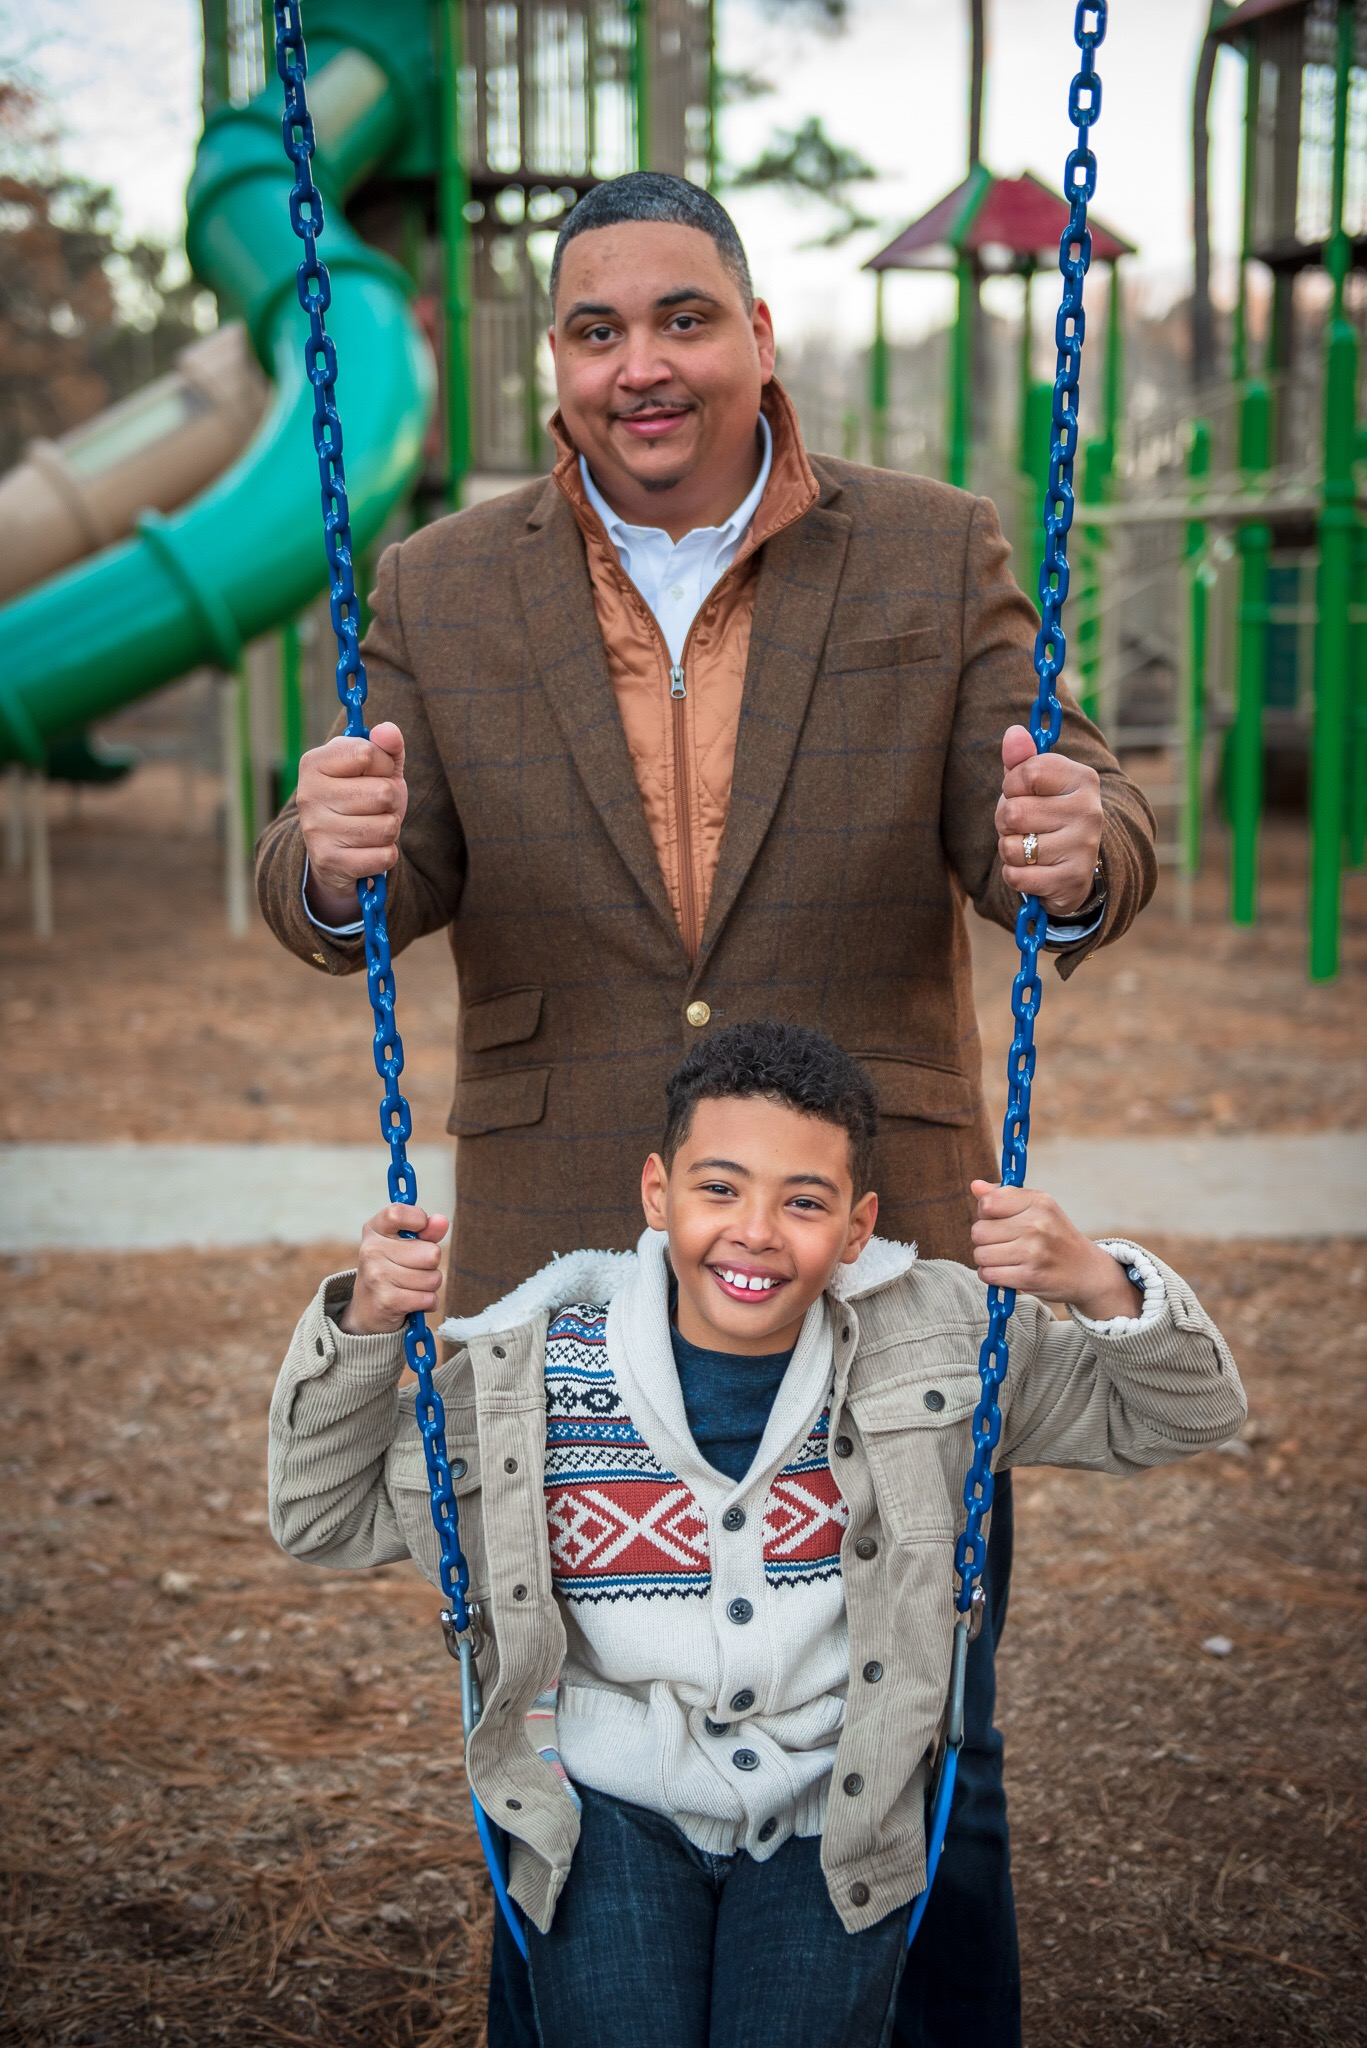 image3-5-1 Father Son Holiday Photos - Southern Gentlemen Edition